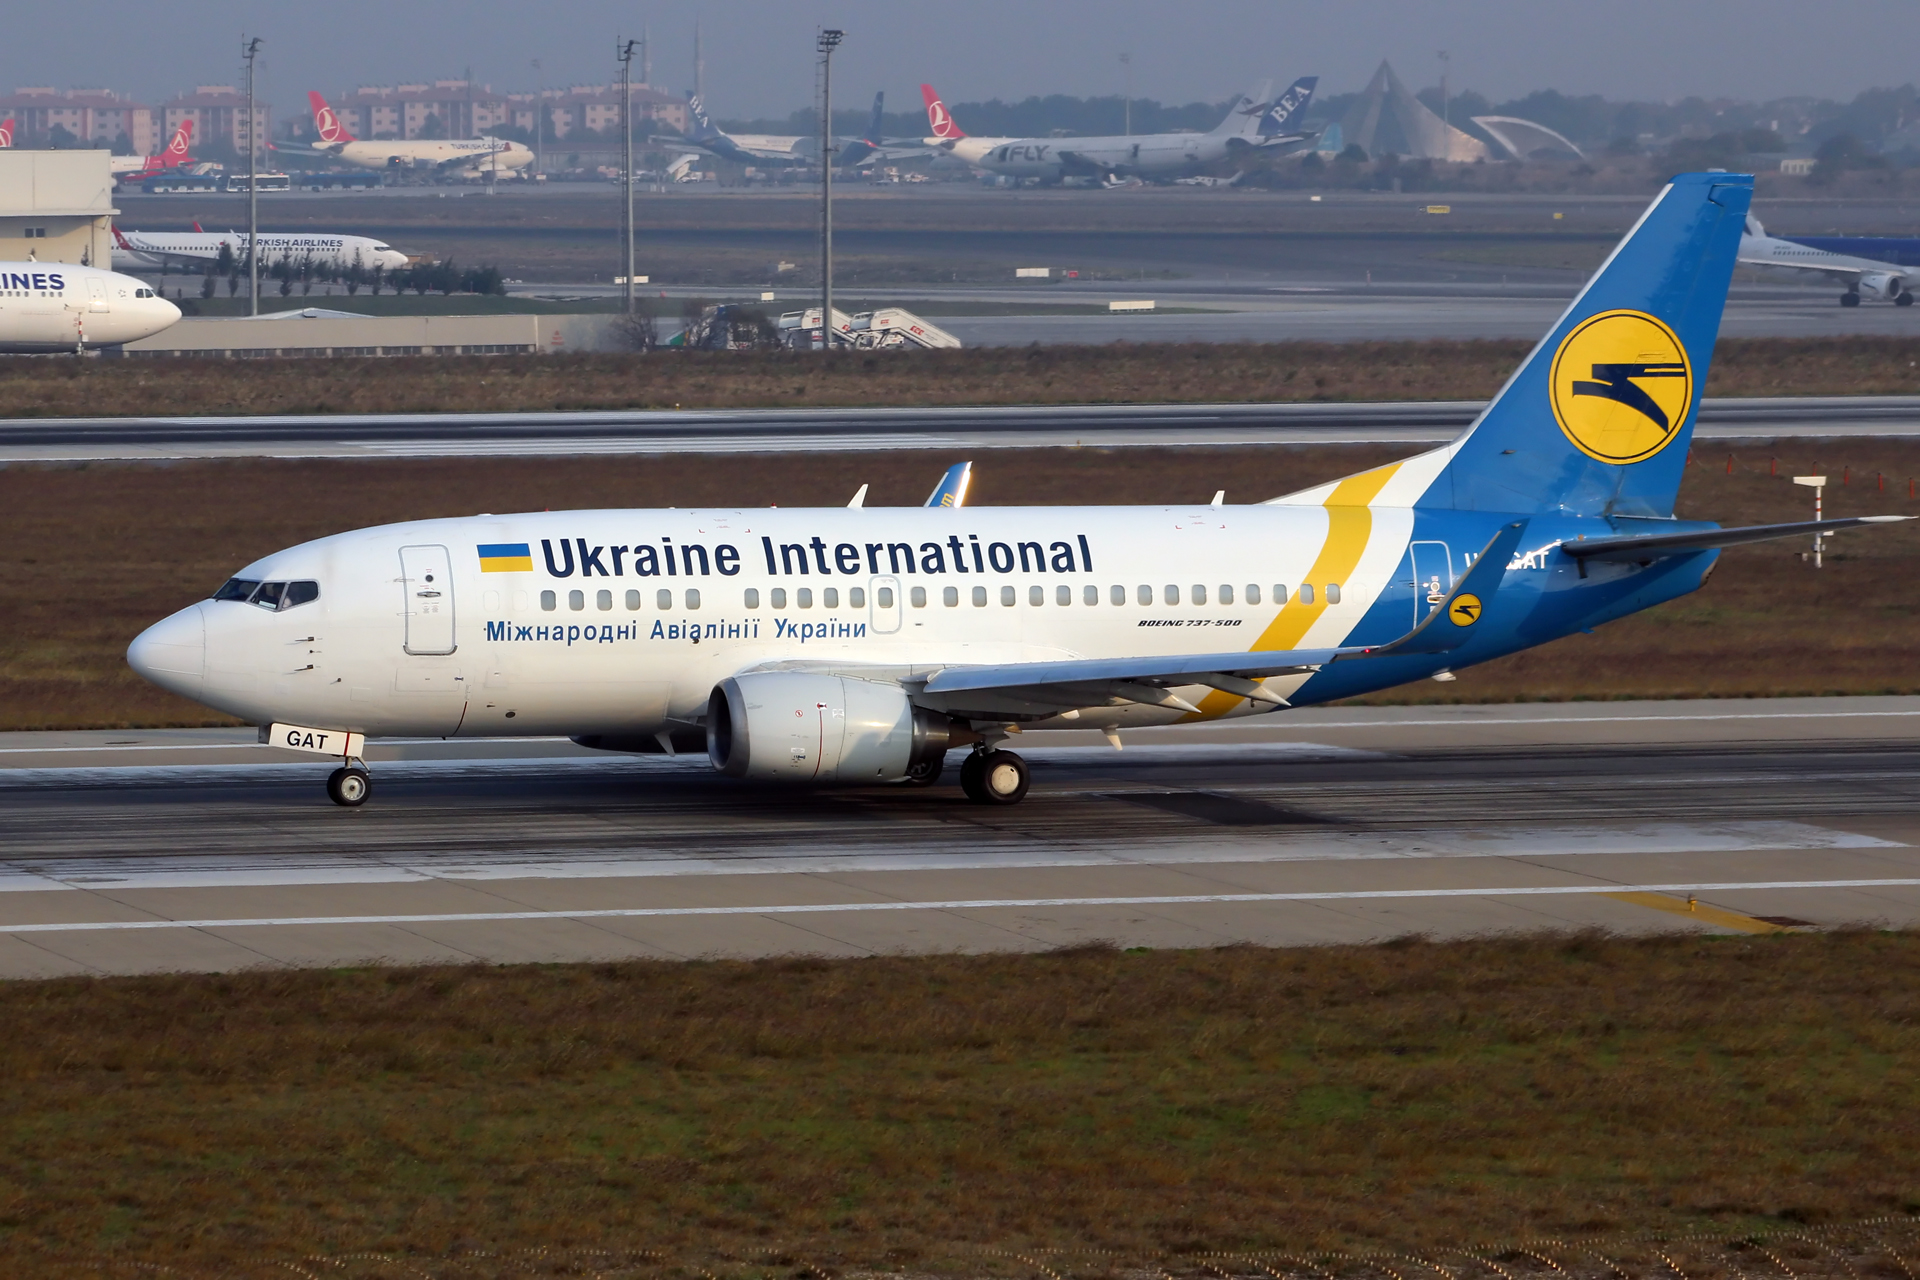 Ukraine International Airlines Wikipedia